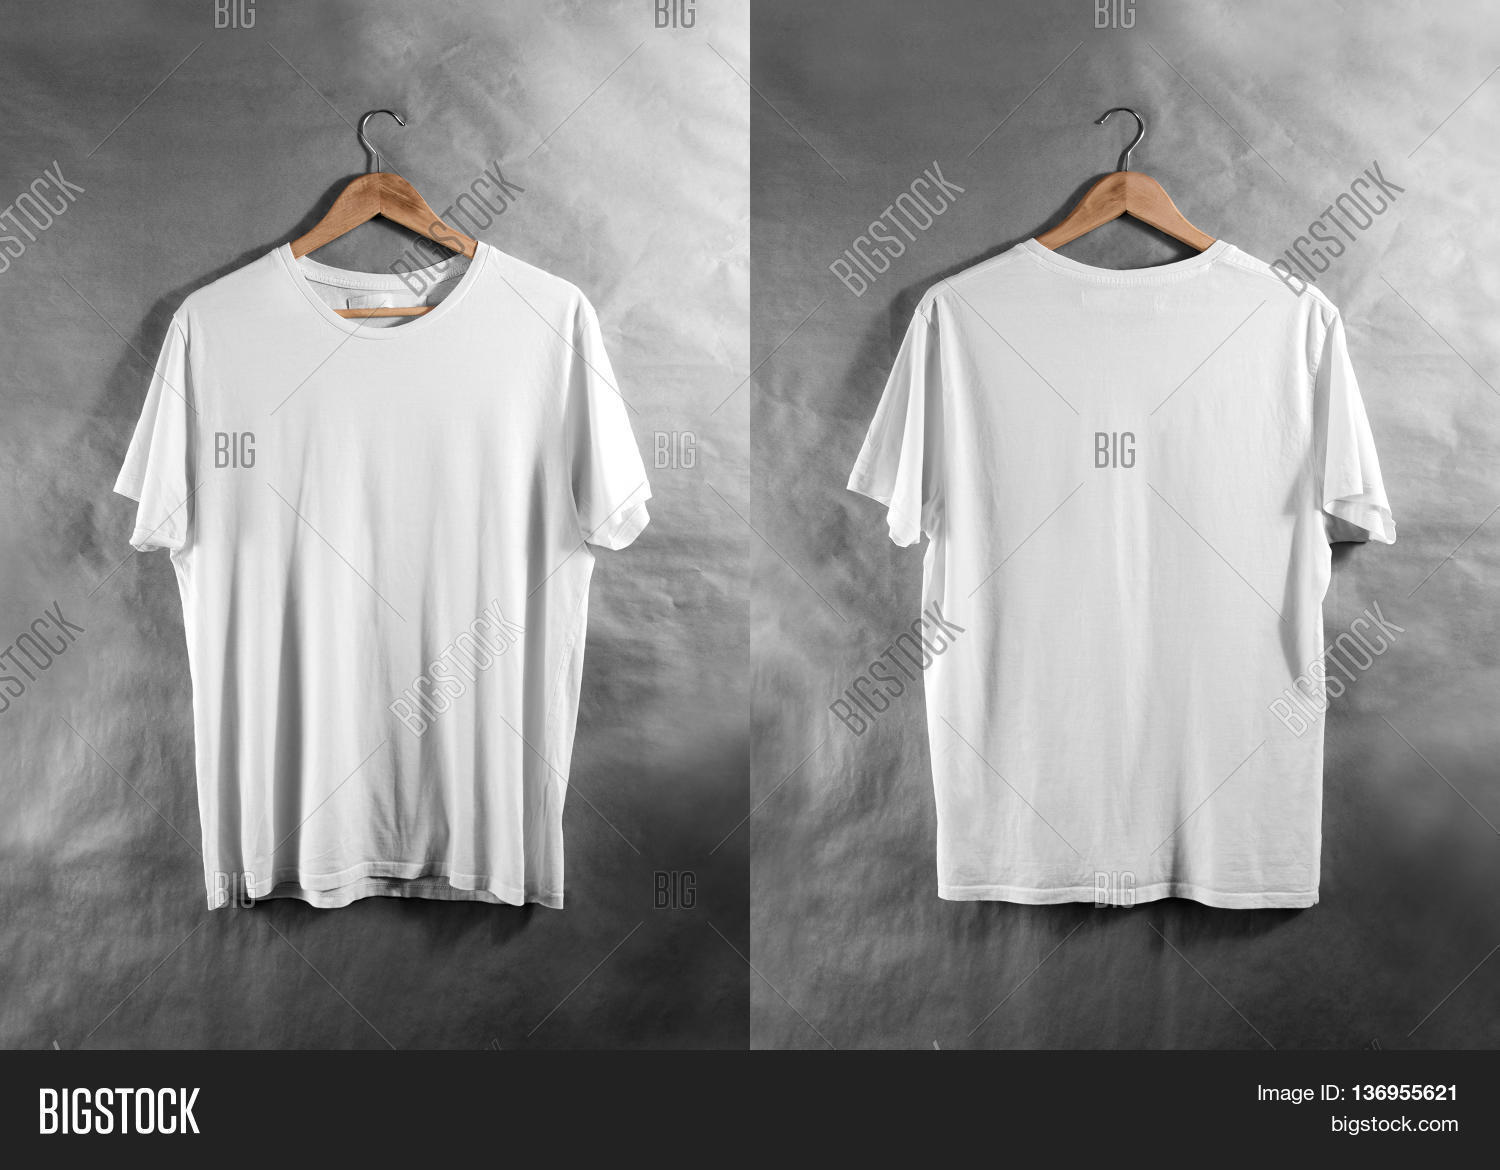 White t shirt front and back template - Blank White T Shirt Front And Back Side View On Hanger Design Mockup Clear Plain Cotton Tshirt Mock Up Template